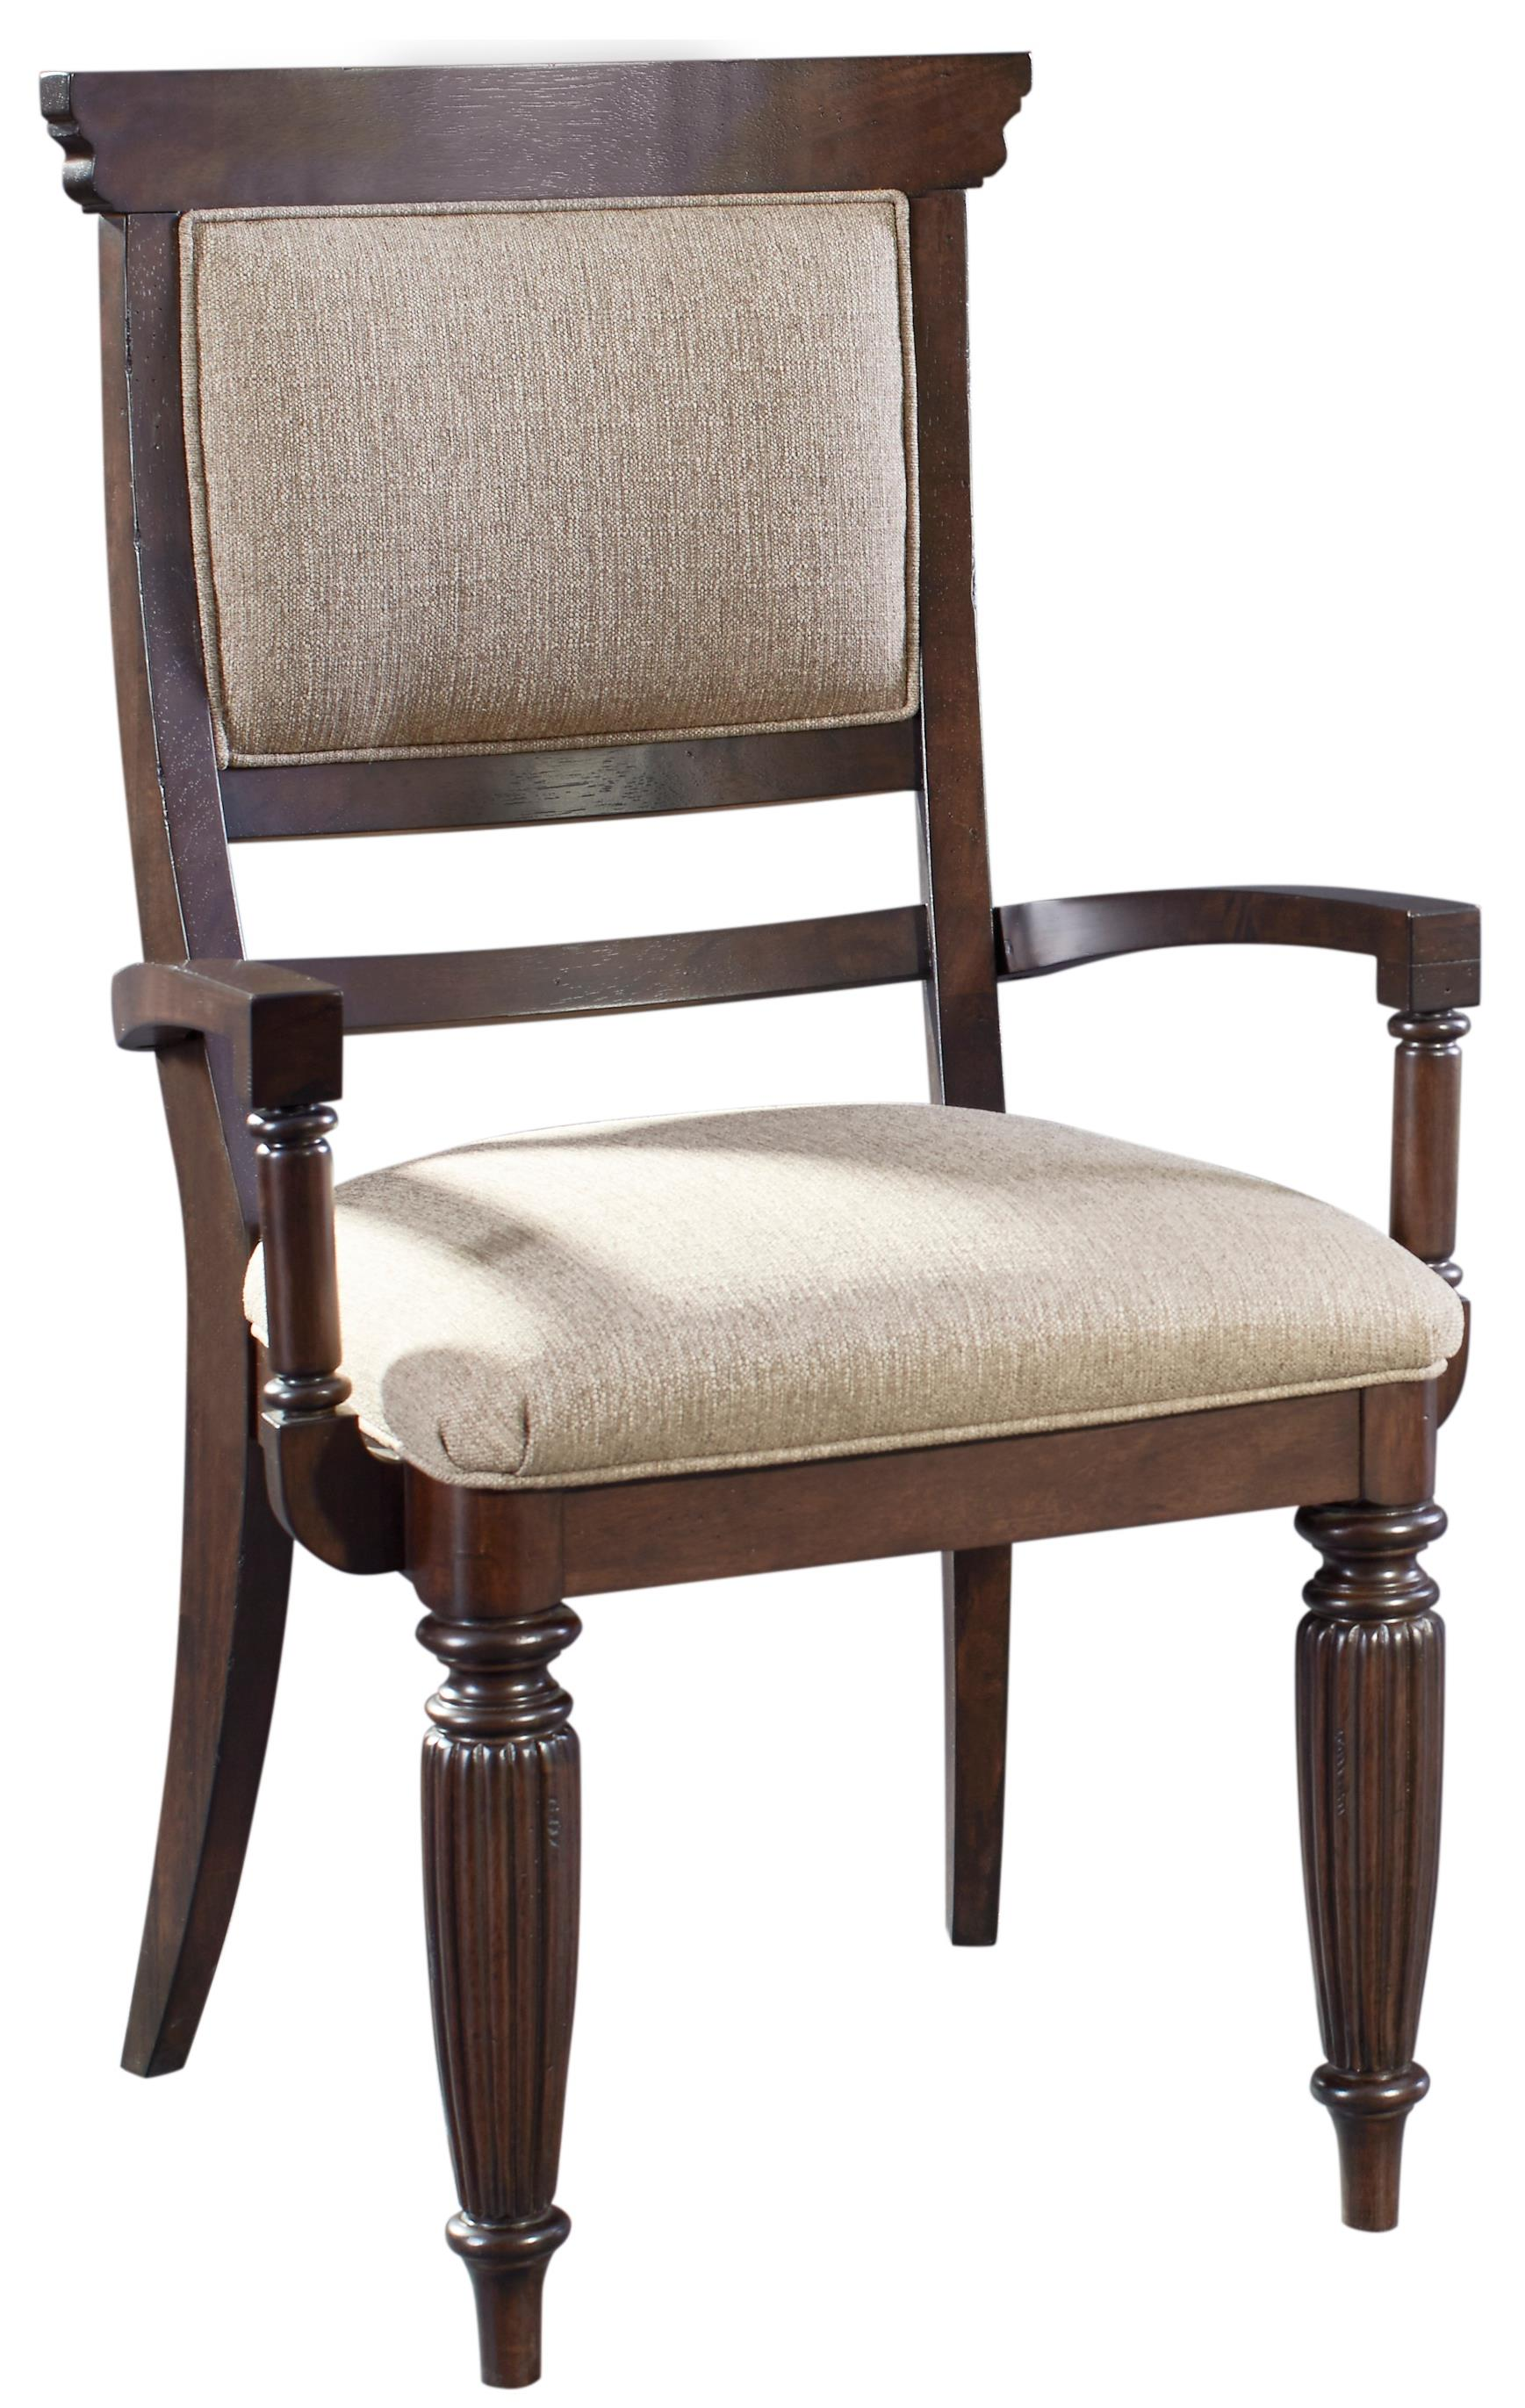 Broyhill Furniture Jessa Upholstered Seat and Back Arm Chair - Item Number: 4980-582